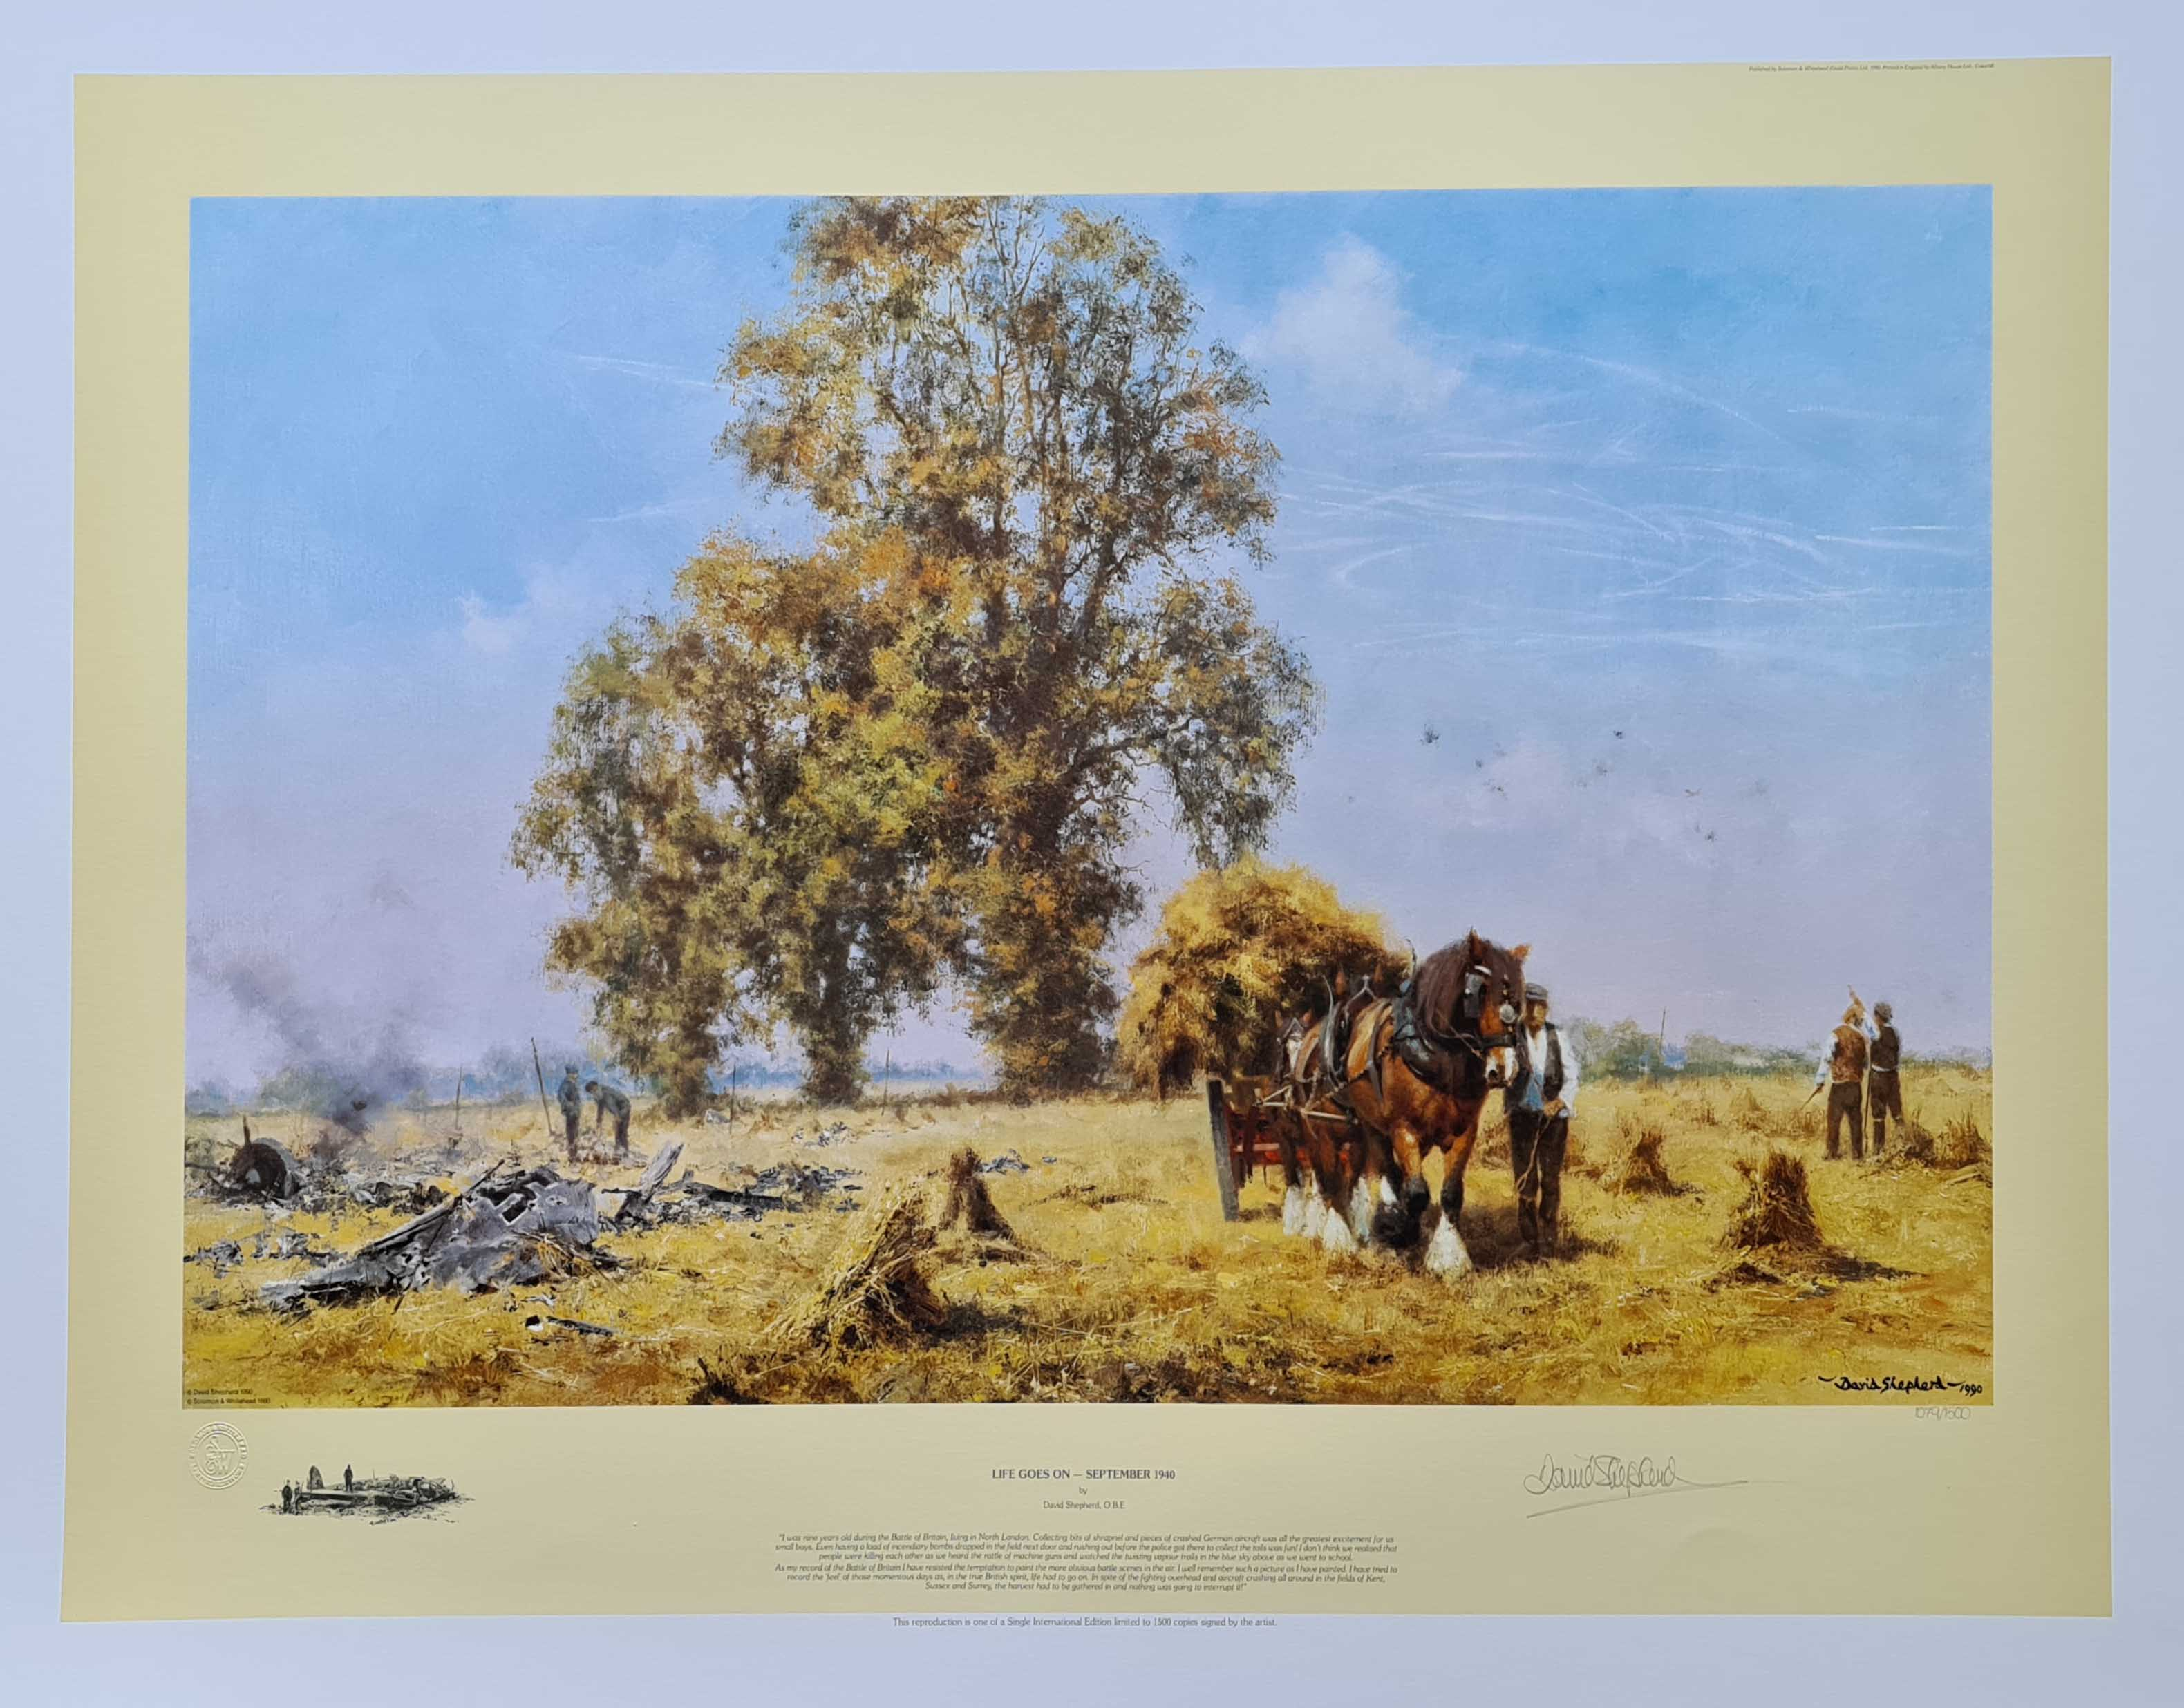 david shepherd, Life goes on, signed limited edition print